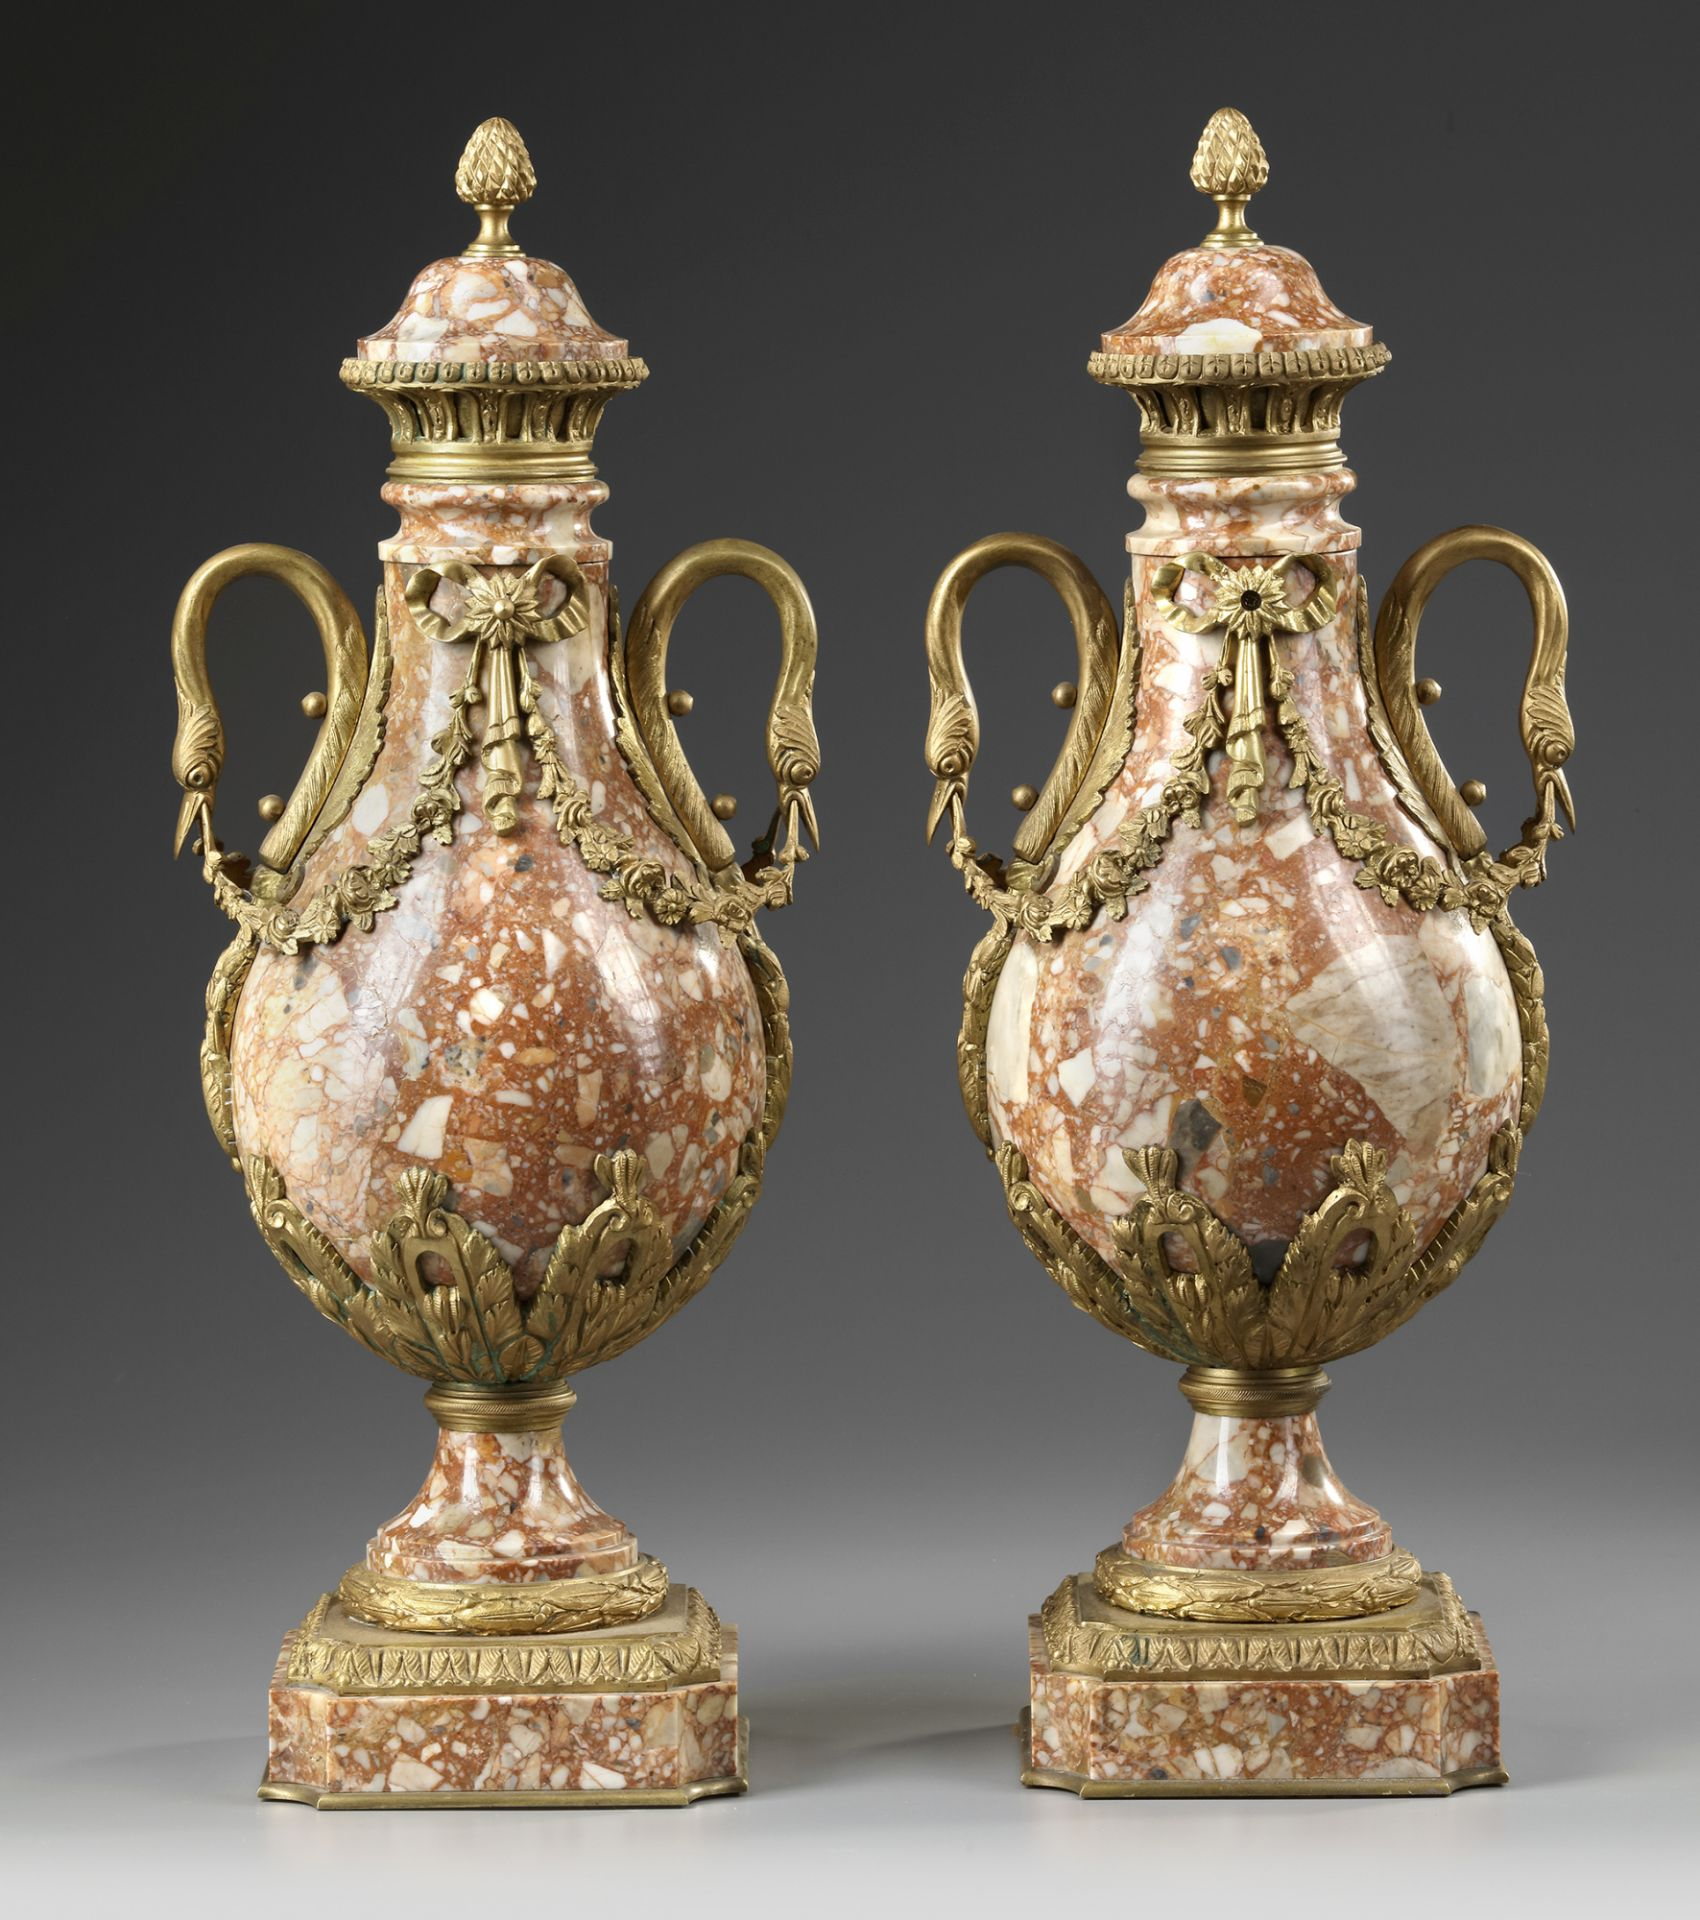 A PAIR OF MARBLE CASSOLETTES, FRANCE 19TH CENTURY